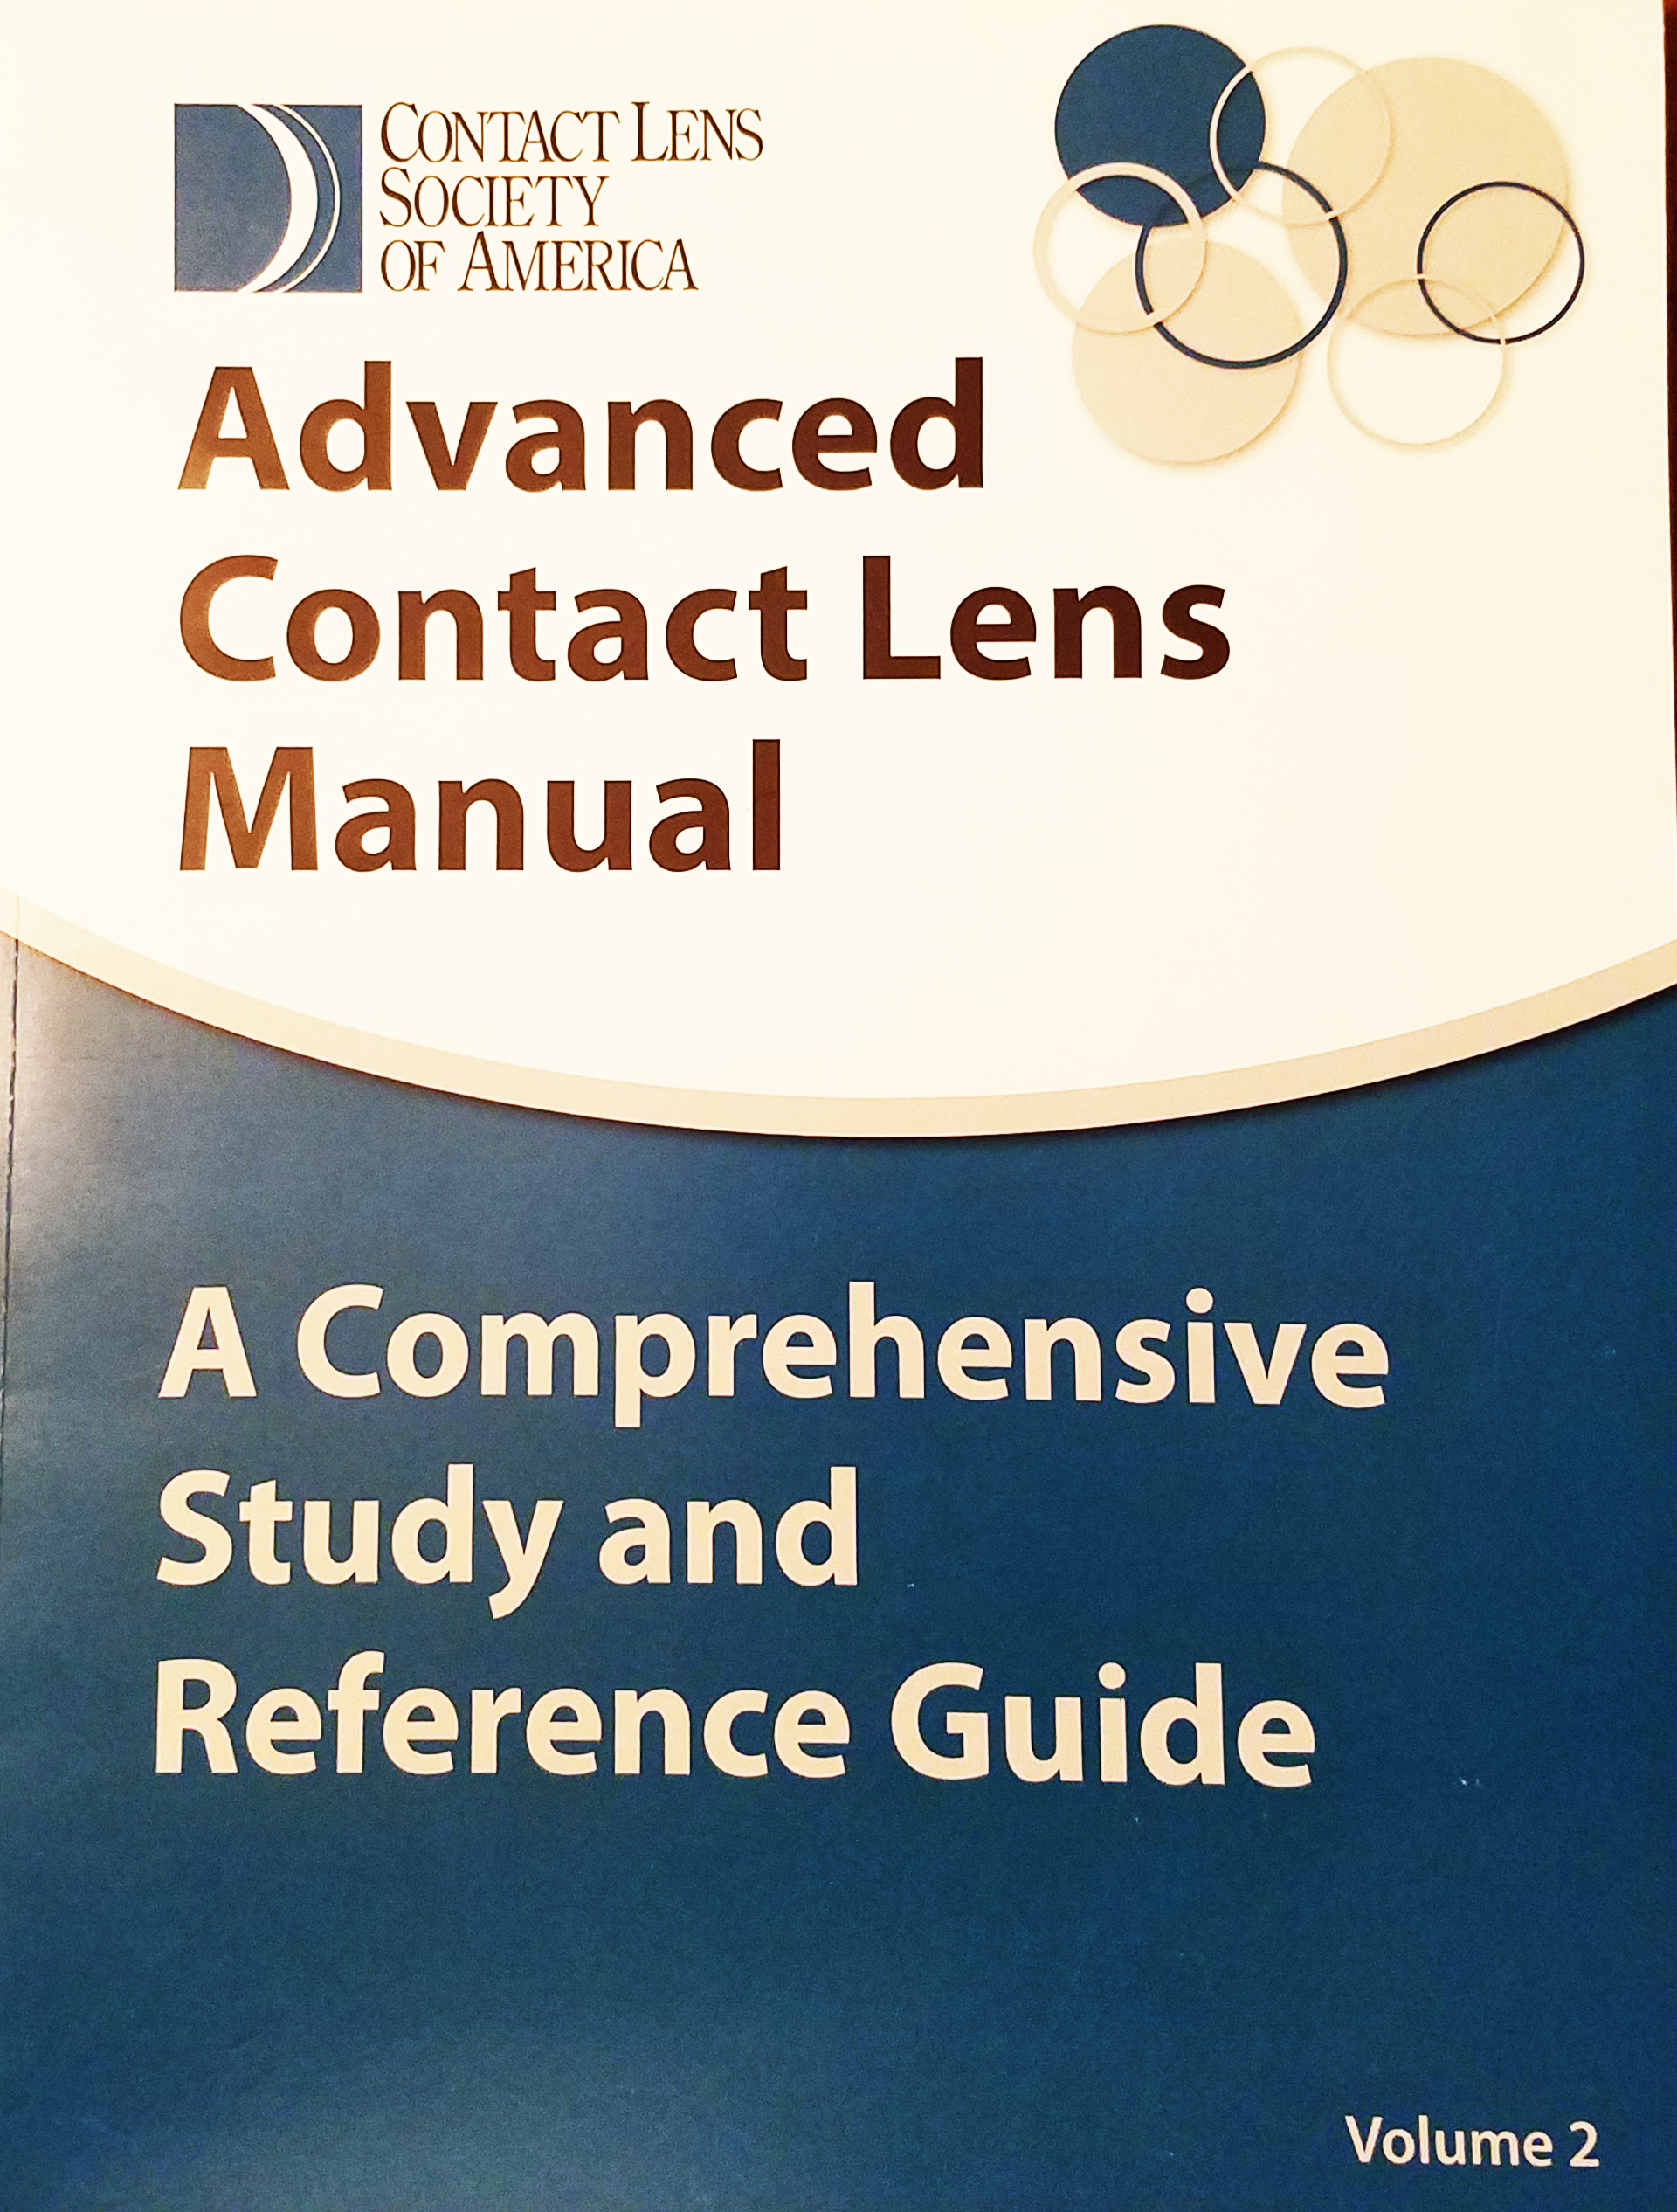 Contact Lens Manual Vol II